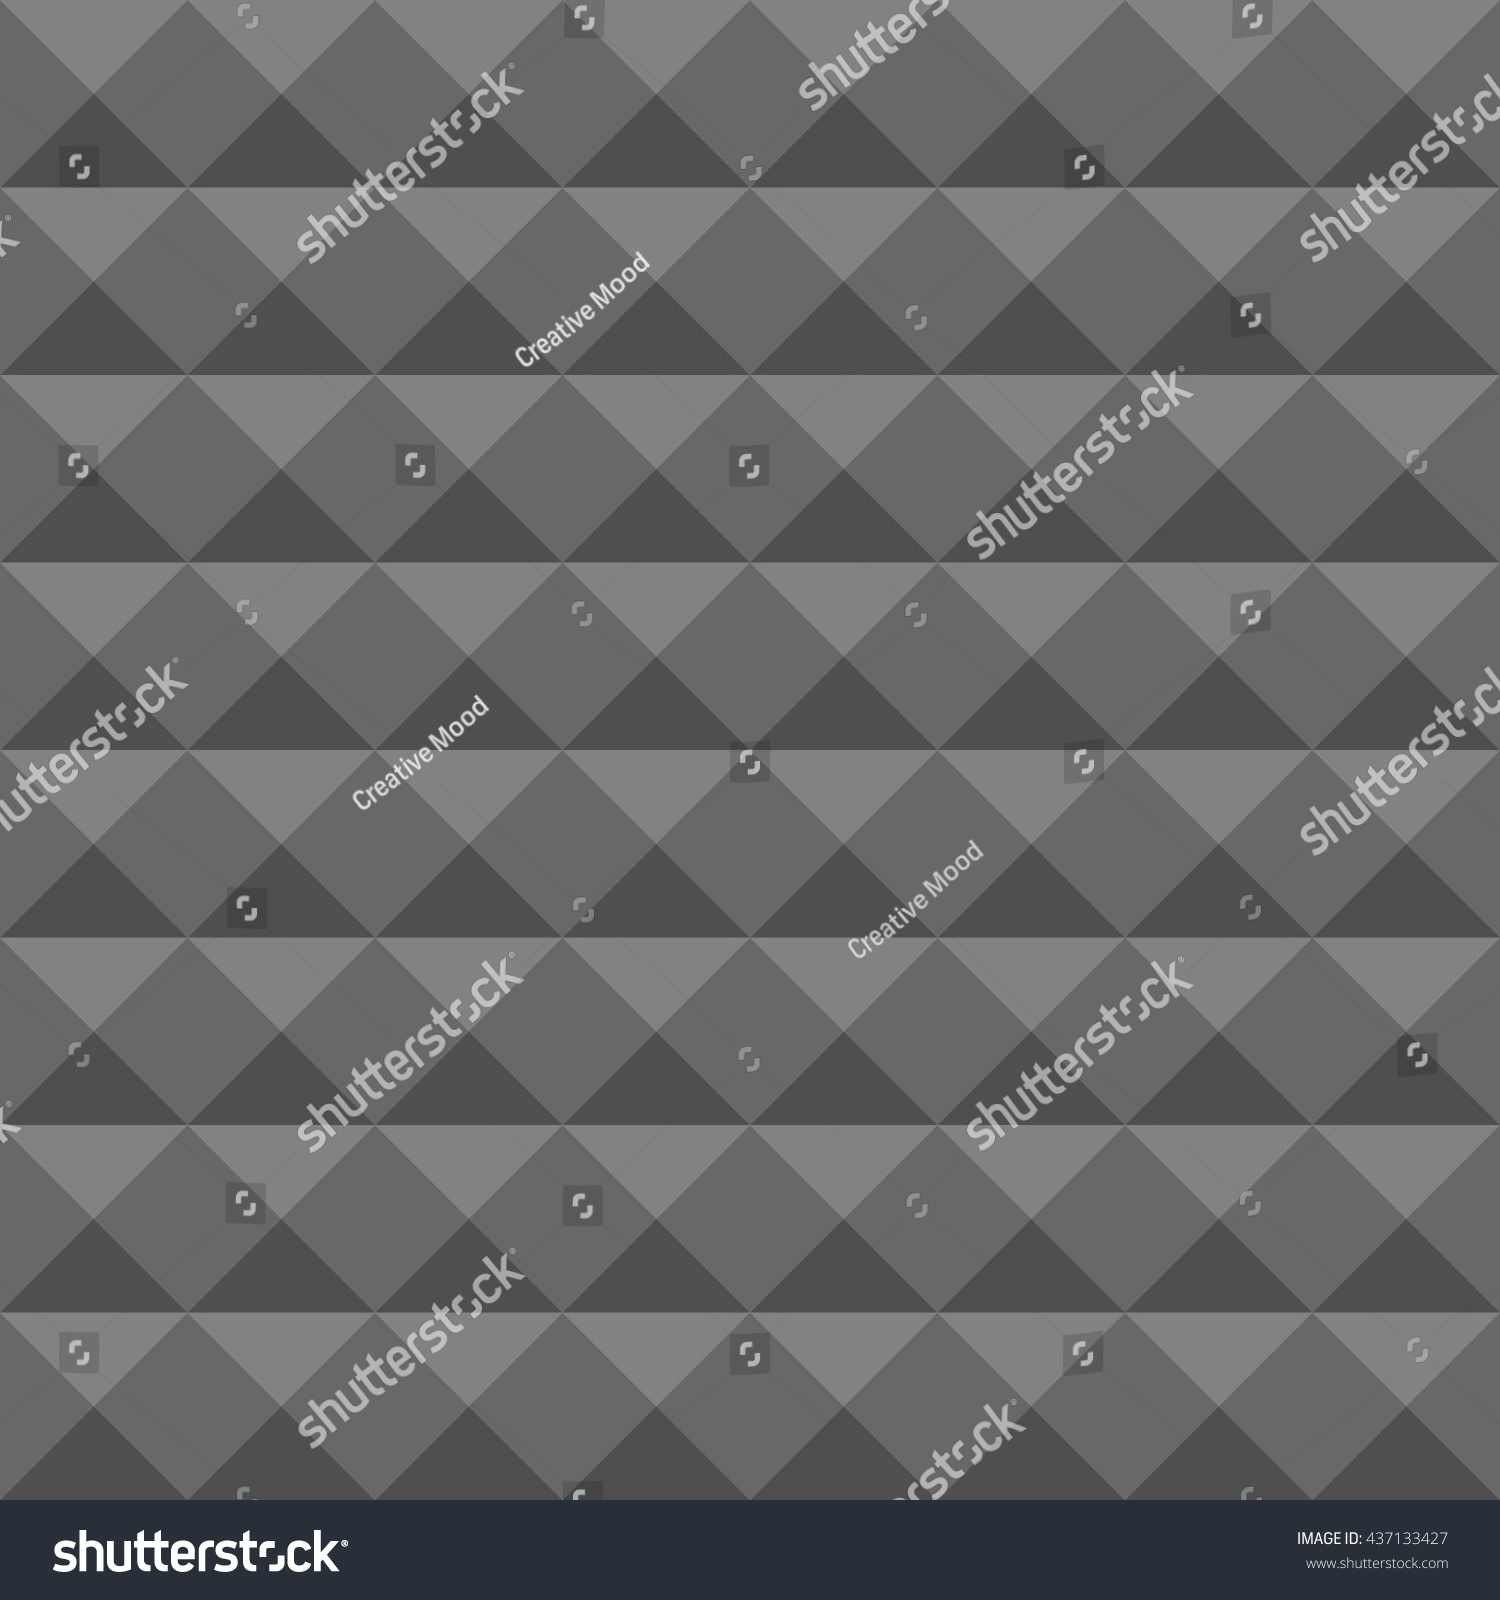 Acoustic Foam Wall Soundproofing Seamless Geometric Stock Vector ...